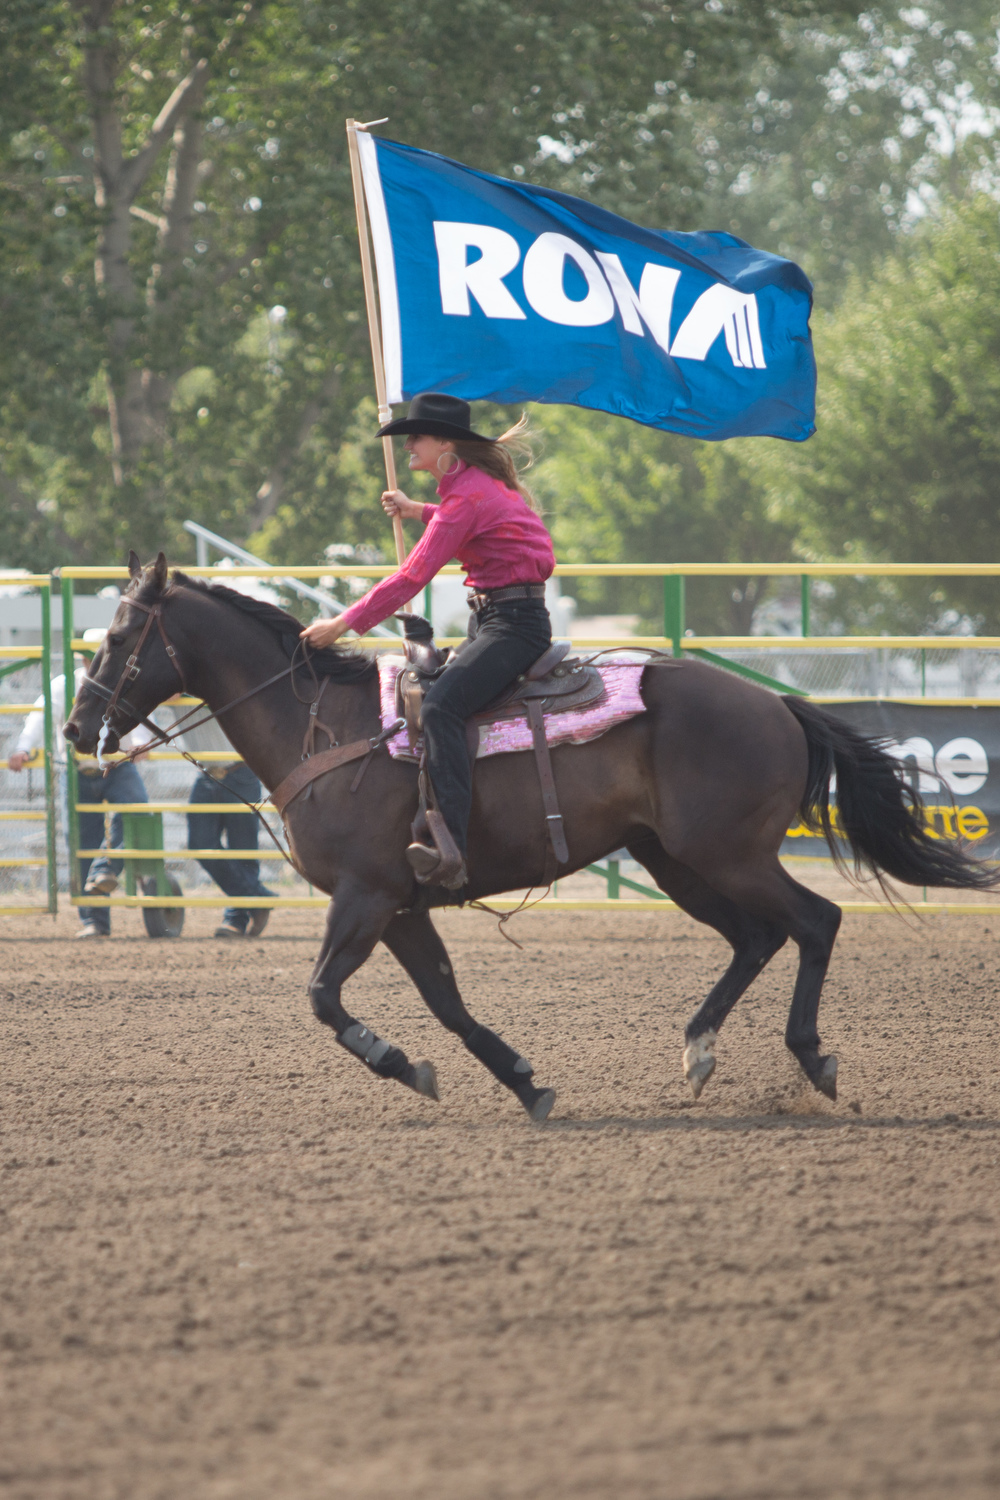 Thank you to  Rona  for being a Platinum Sponsor and sponsoring Admission Wristbands and the naming rights to the Tradeshow.